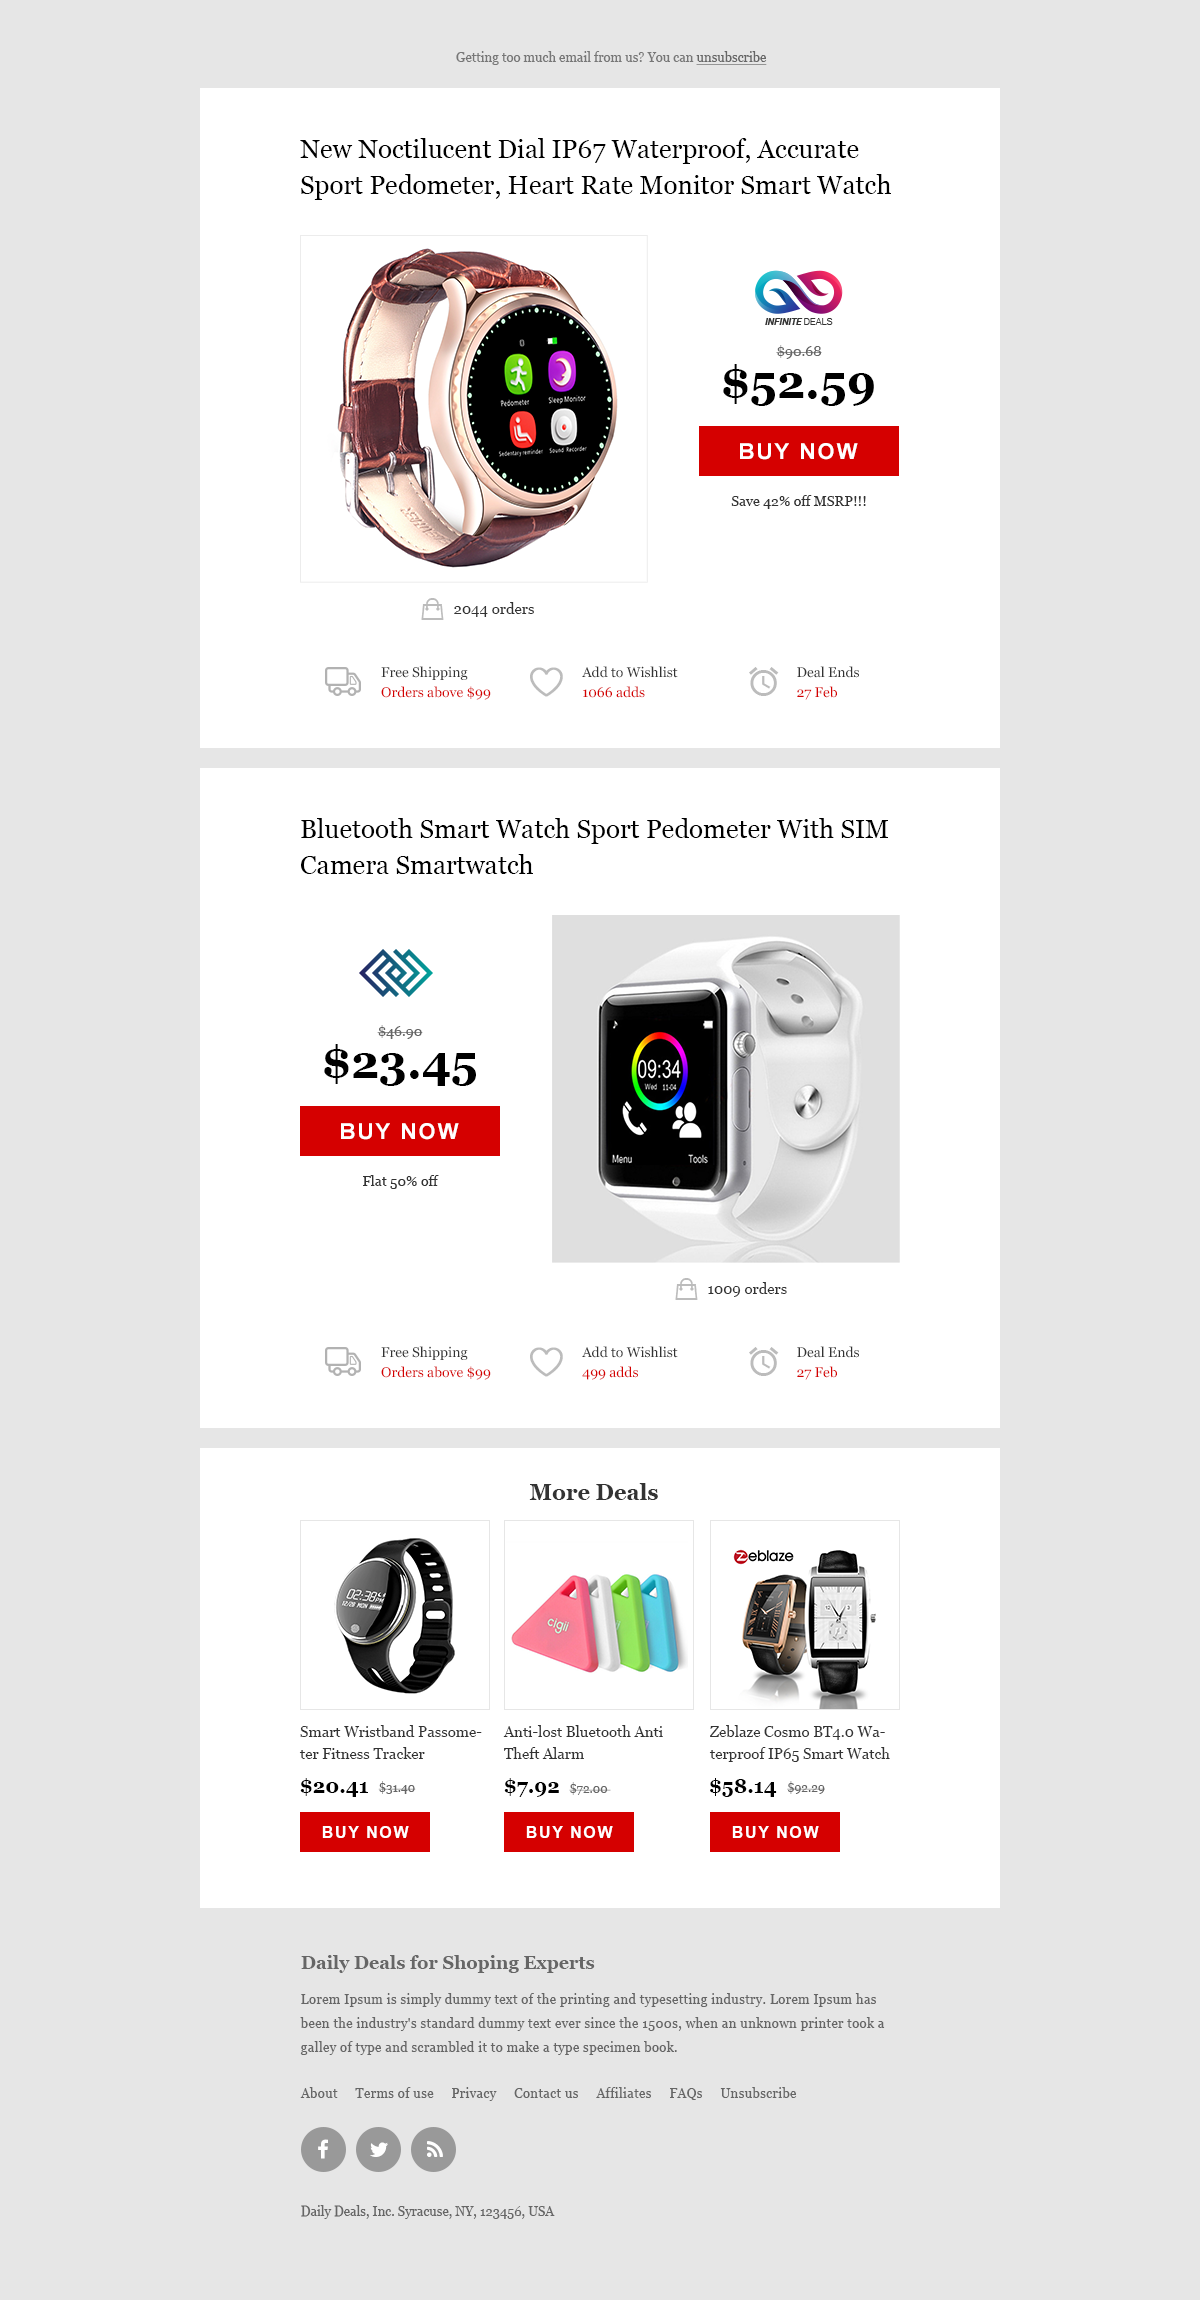 Newsletter For Daily Deals Website Deals Newsletter Template